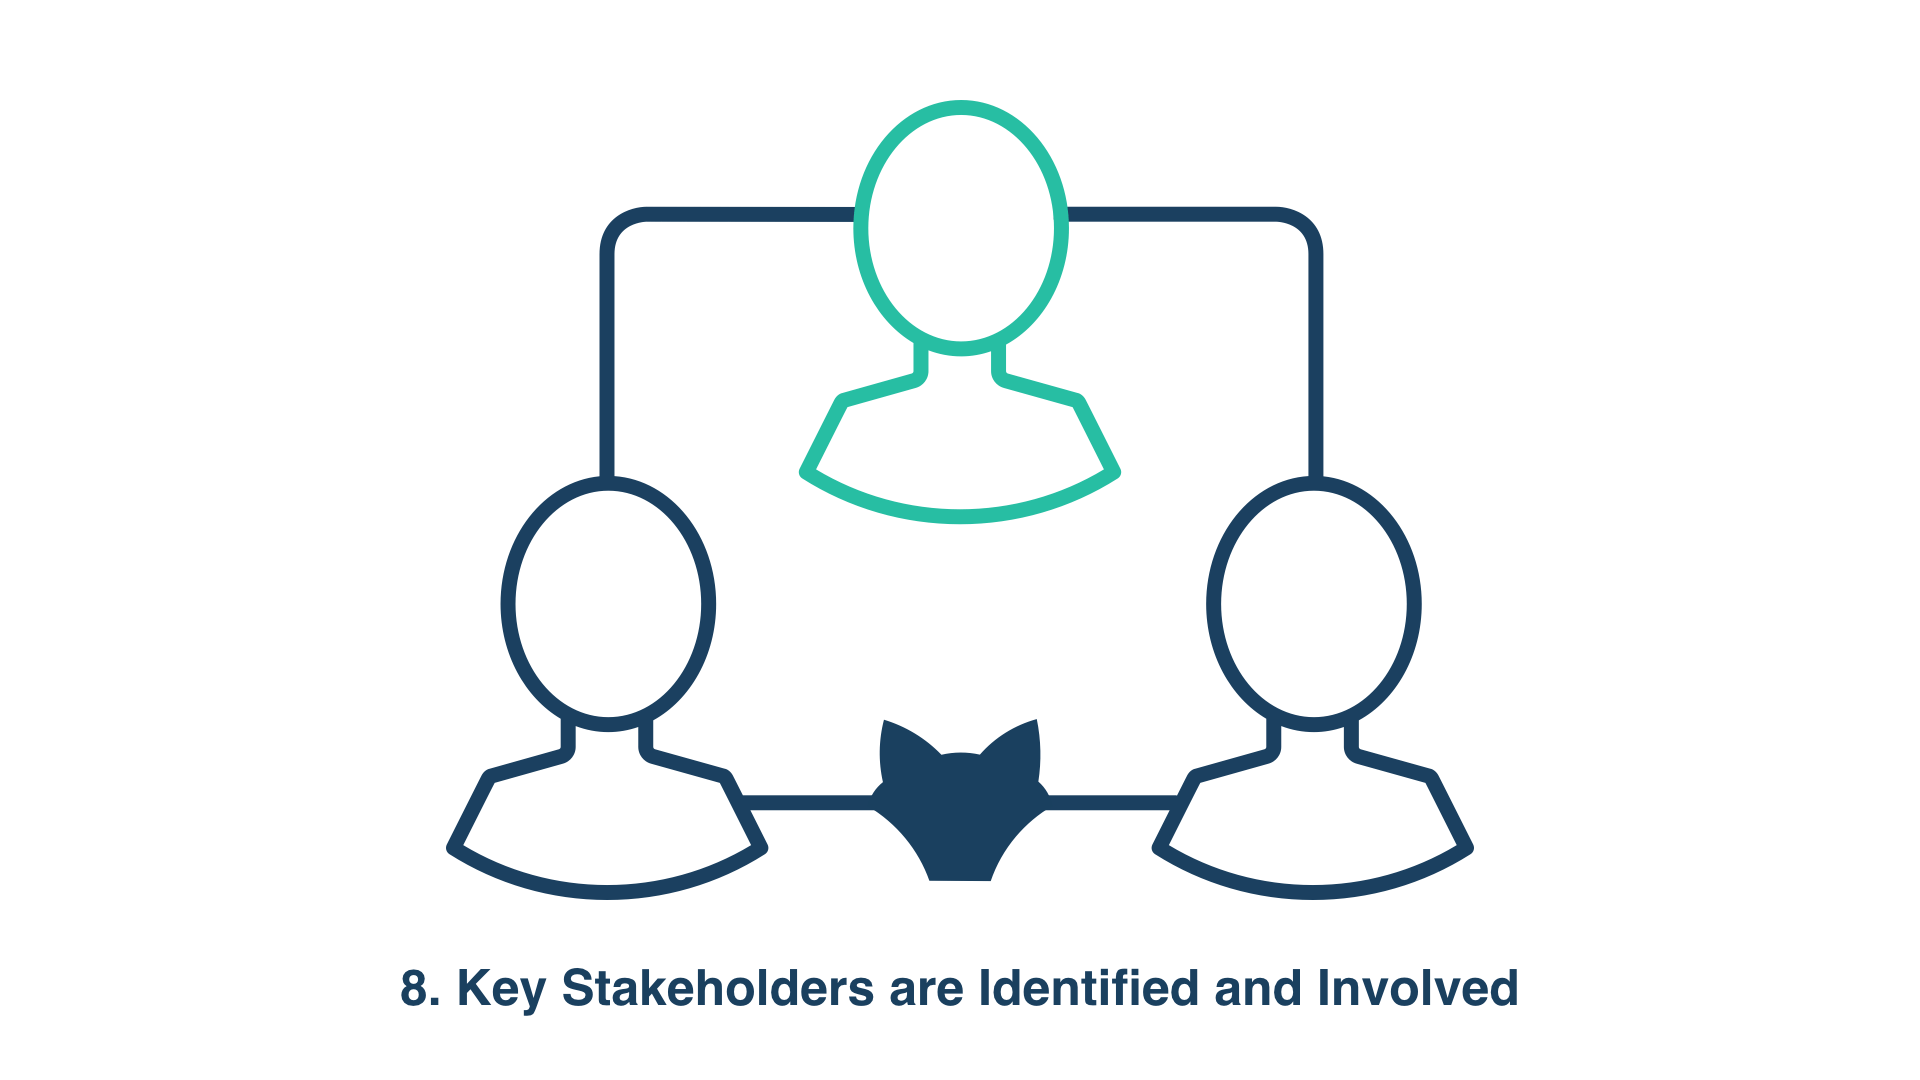 8. Key Stakeholders are Identified and Involved